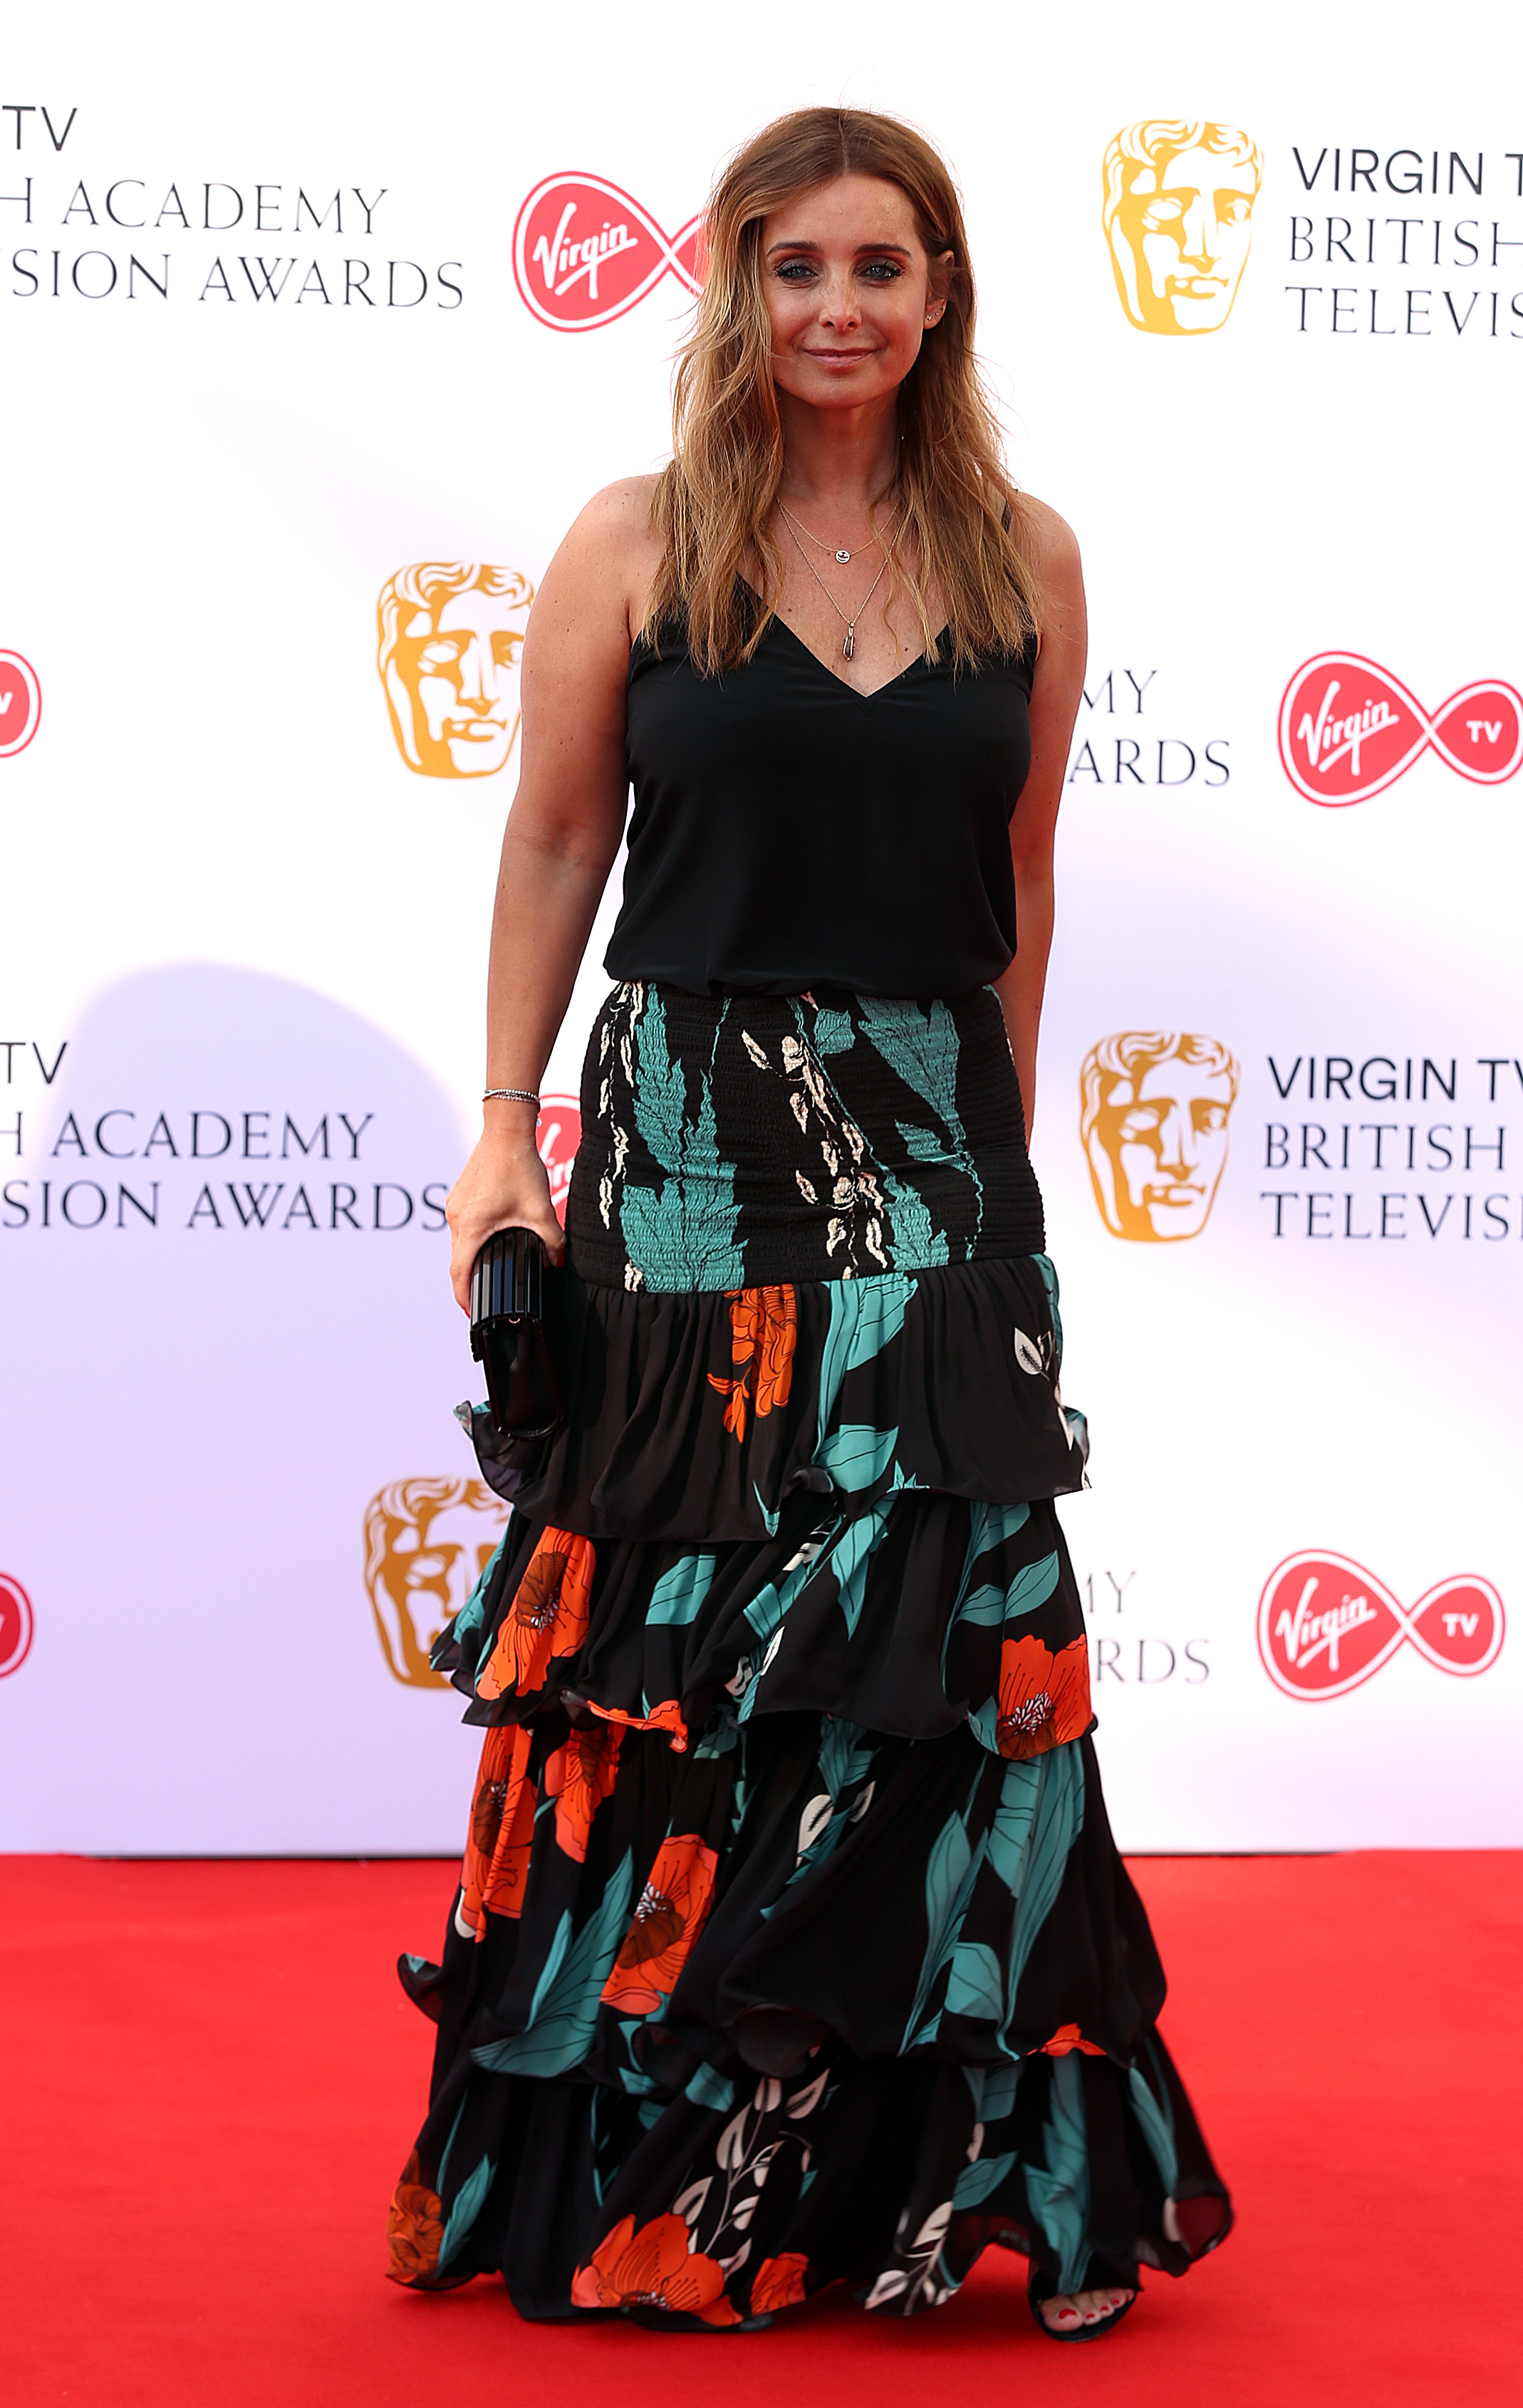 Louise Redknapp attending the Virgin TV British Academy Television Awards 2018 held at the Royal Festival Hall, Southbank Centre, London.